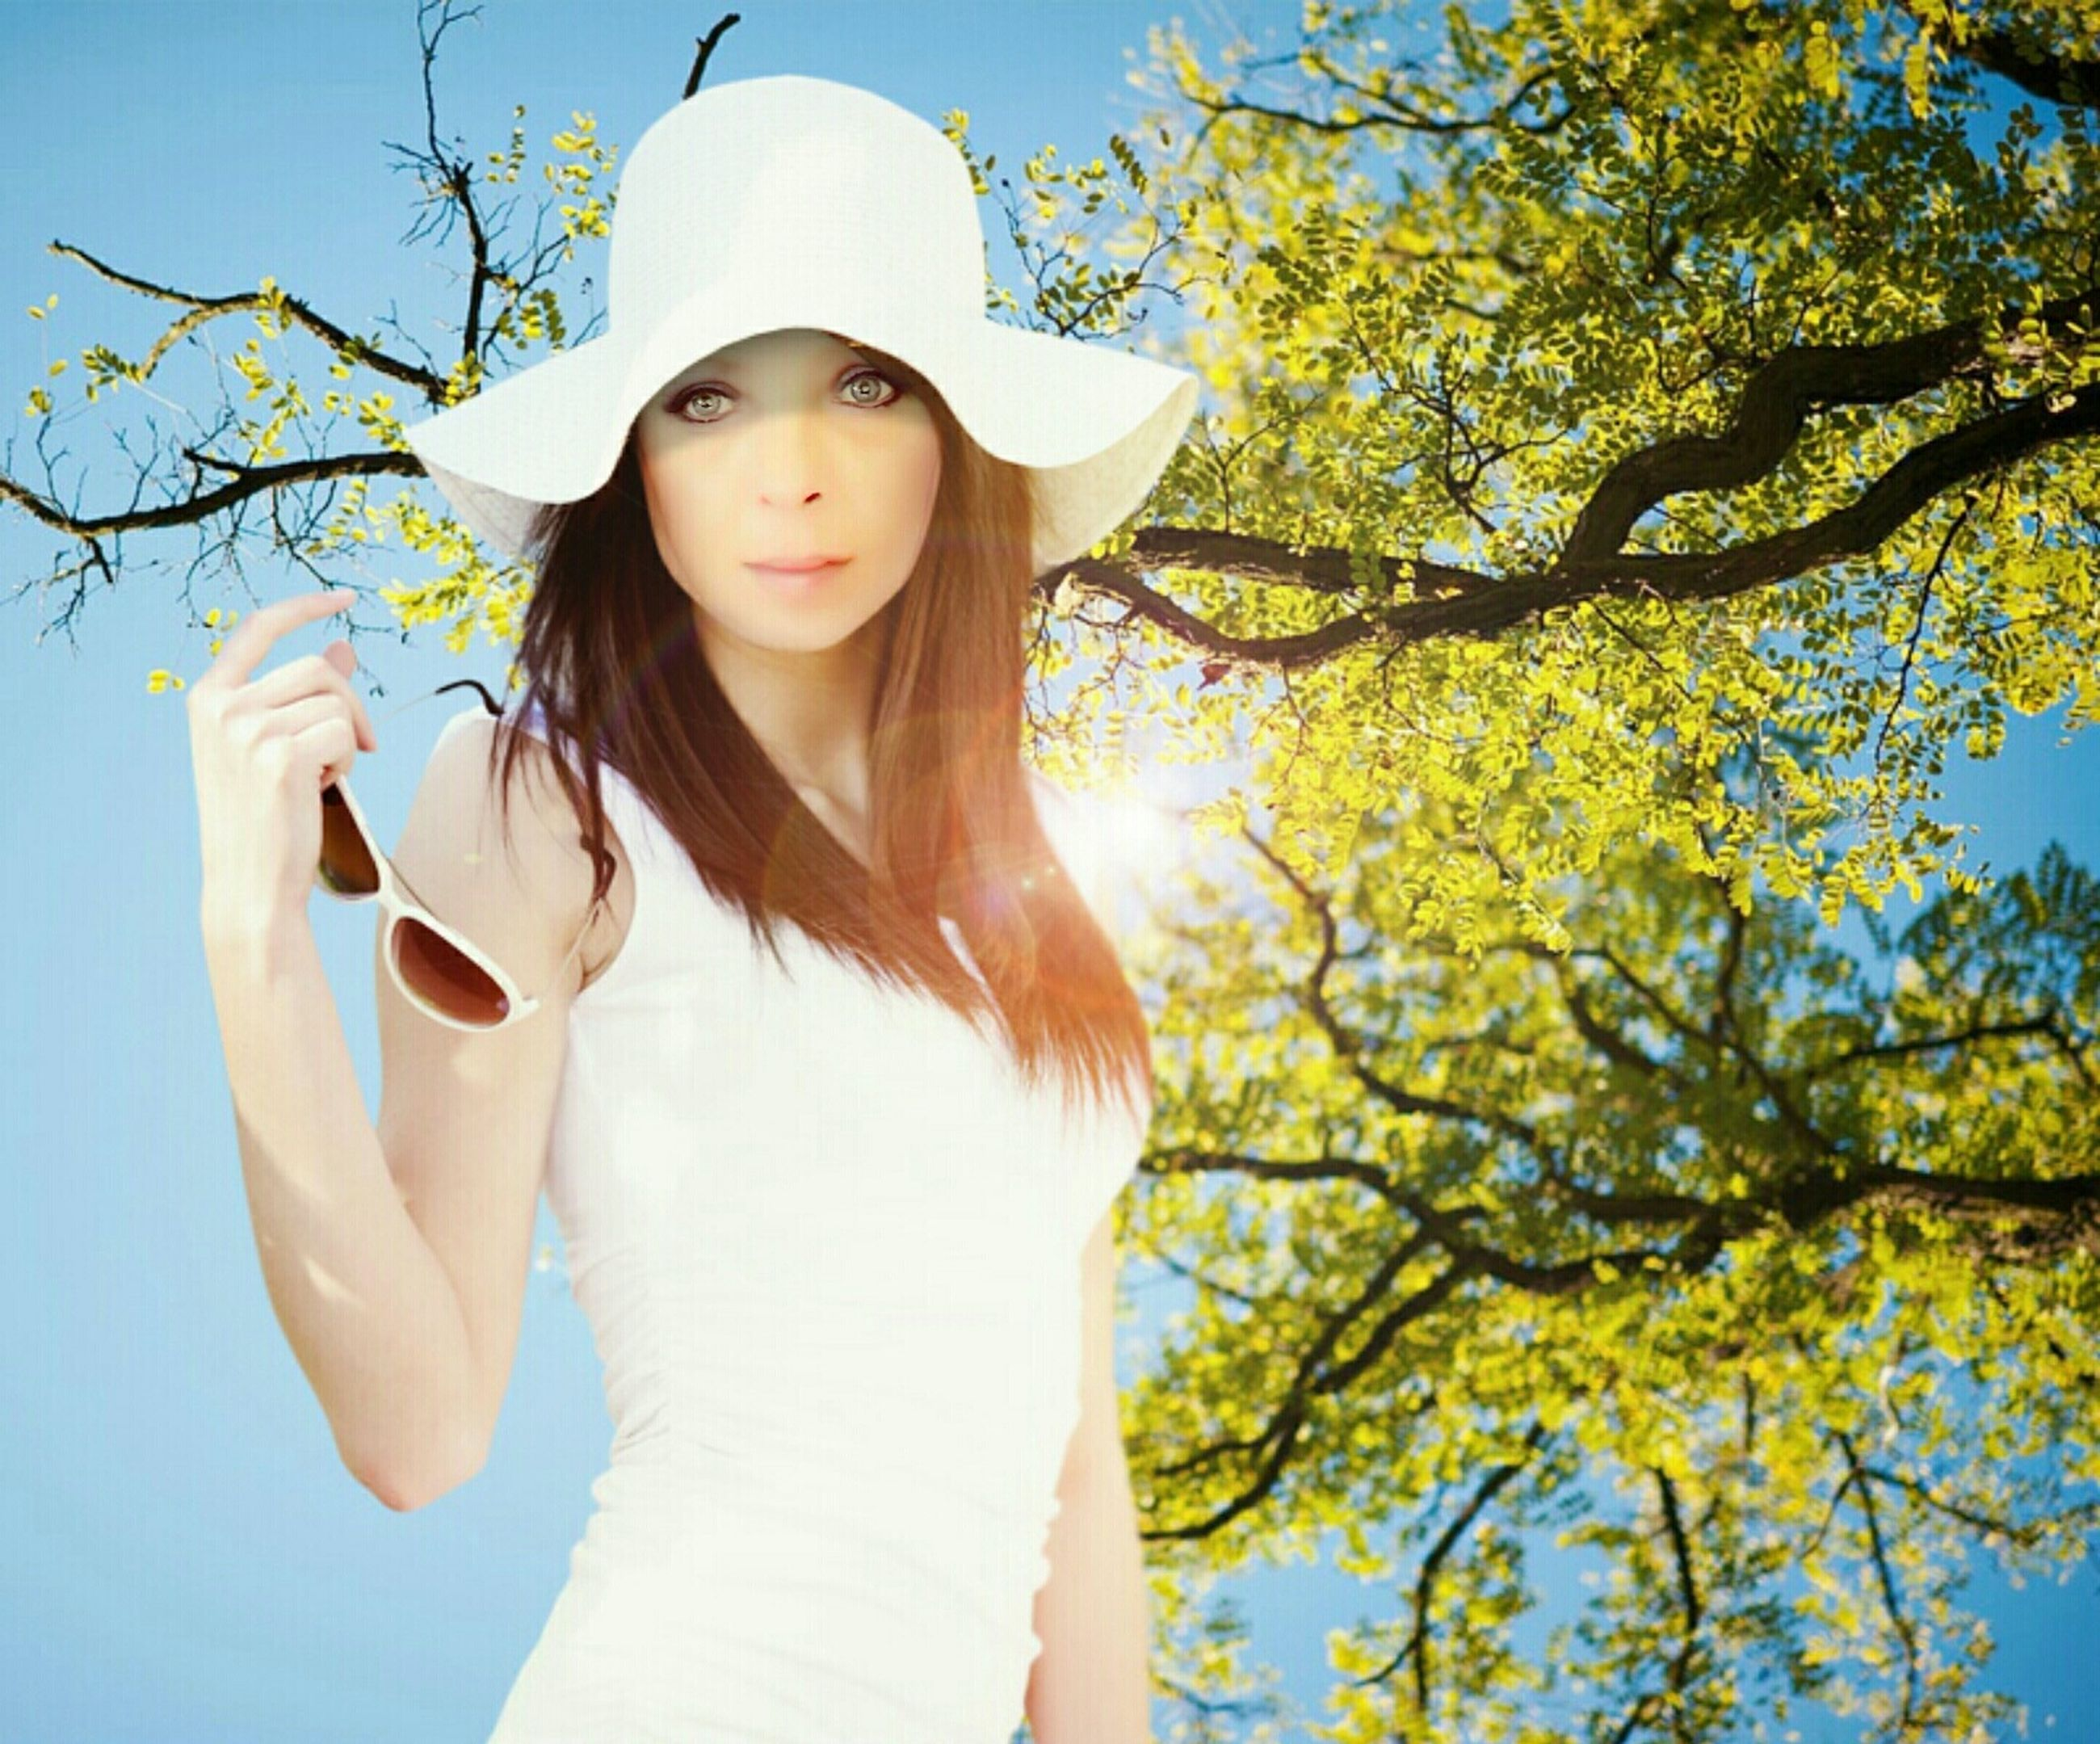 tree, young women, long hair, young adult, leisure activity, person, sunlight, waist up, front view, beauty, casual clothing, outdoors, nature, focus on foreground, sun